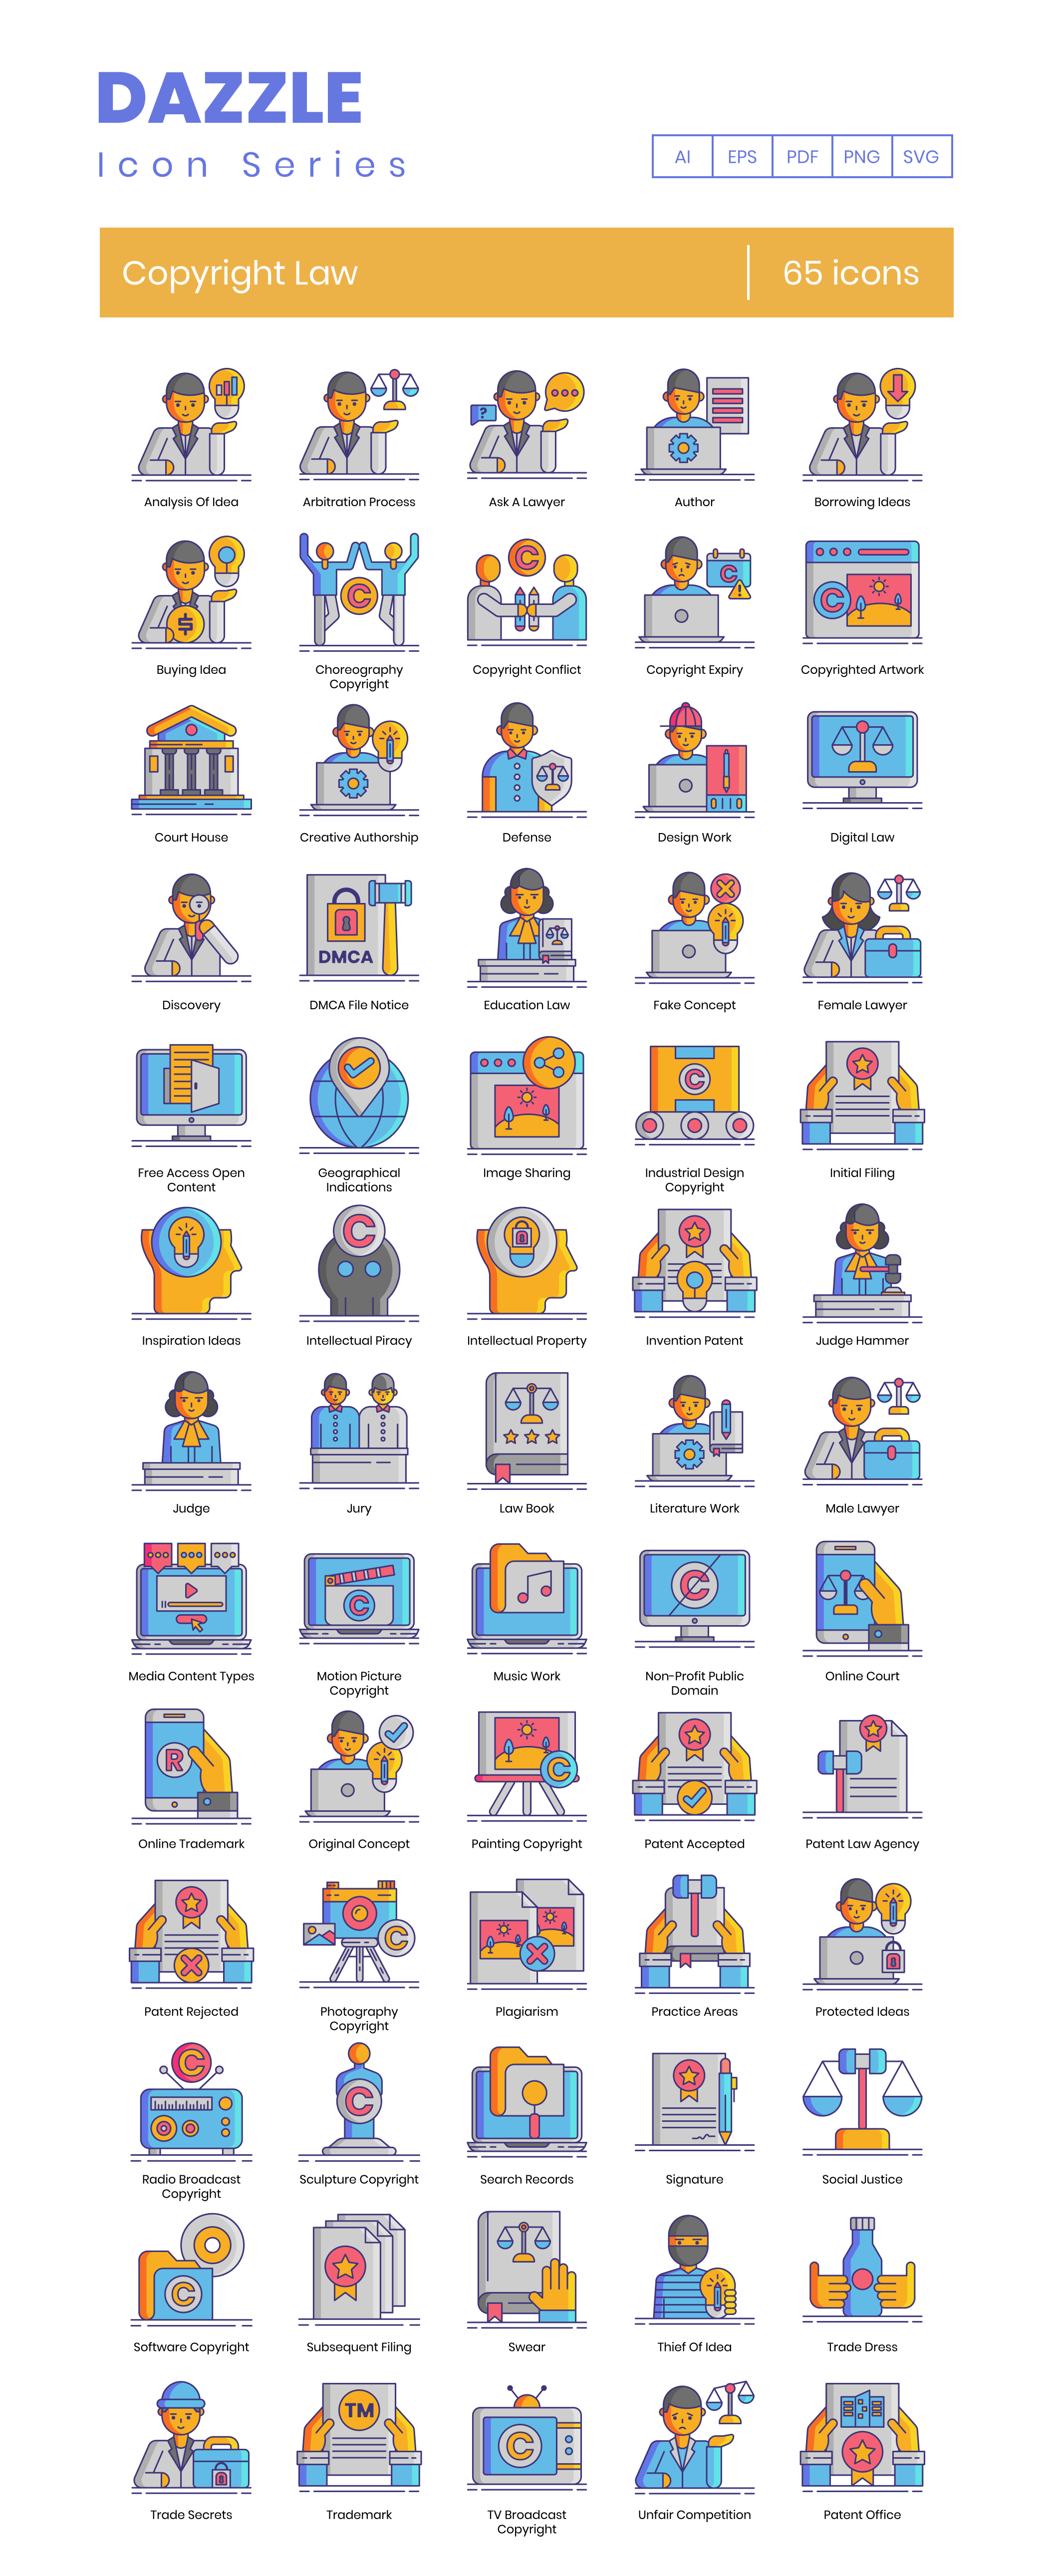 Copyright Law Vector Icons Preview Image